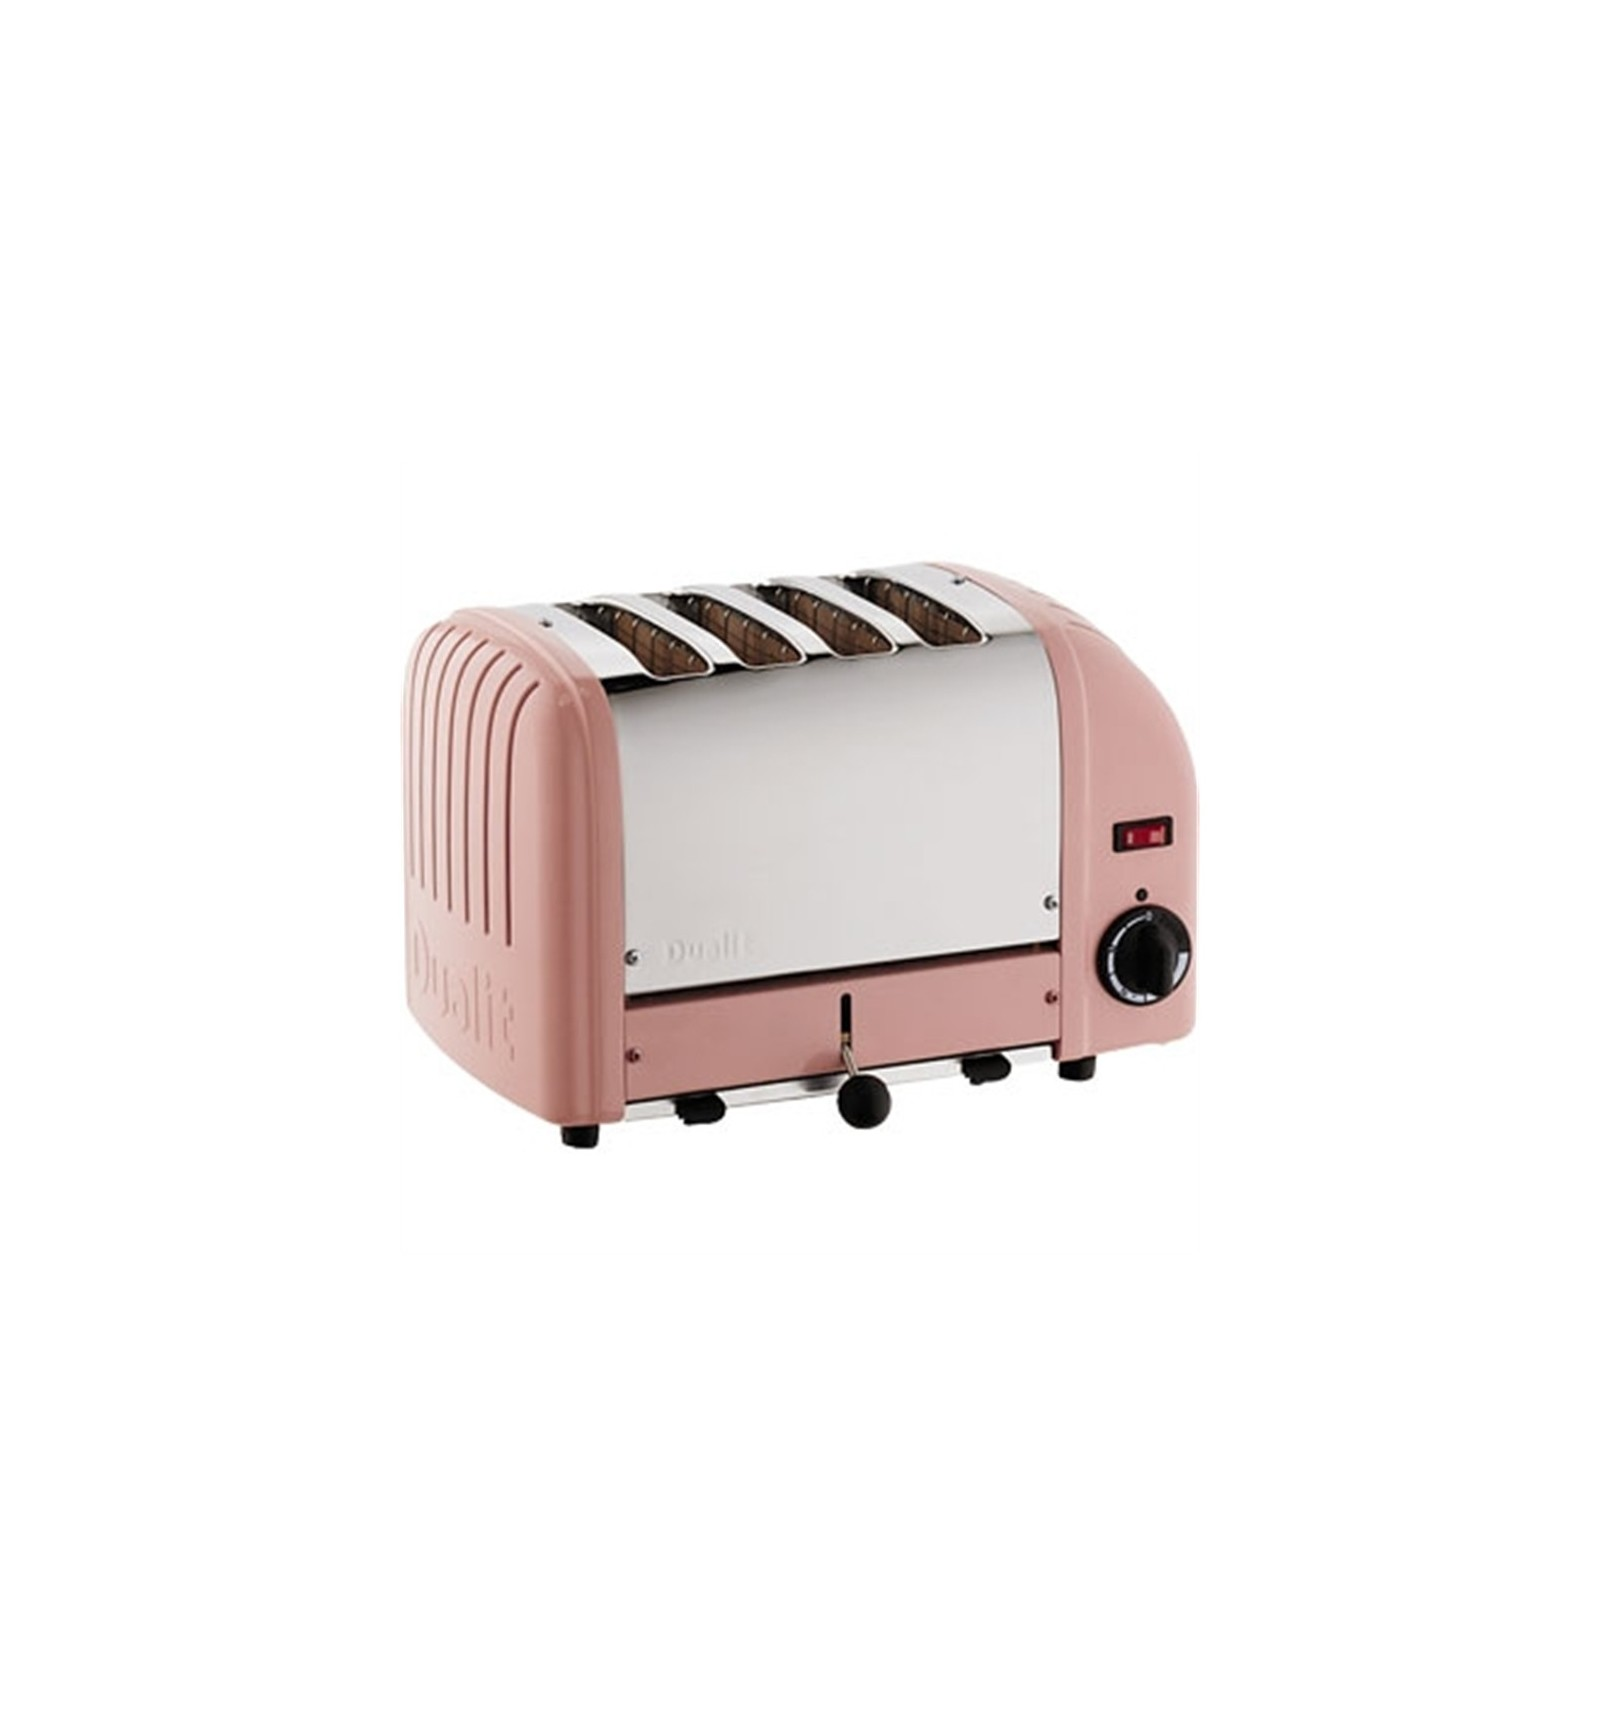 newgen toaster from appliances toasters classic shadow small image home dualit slice